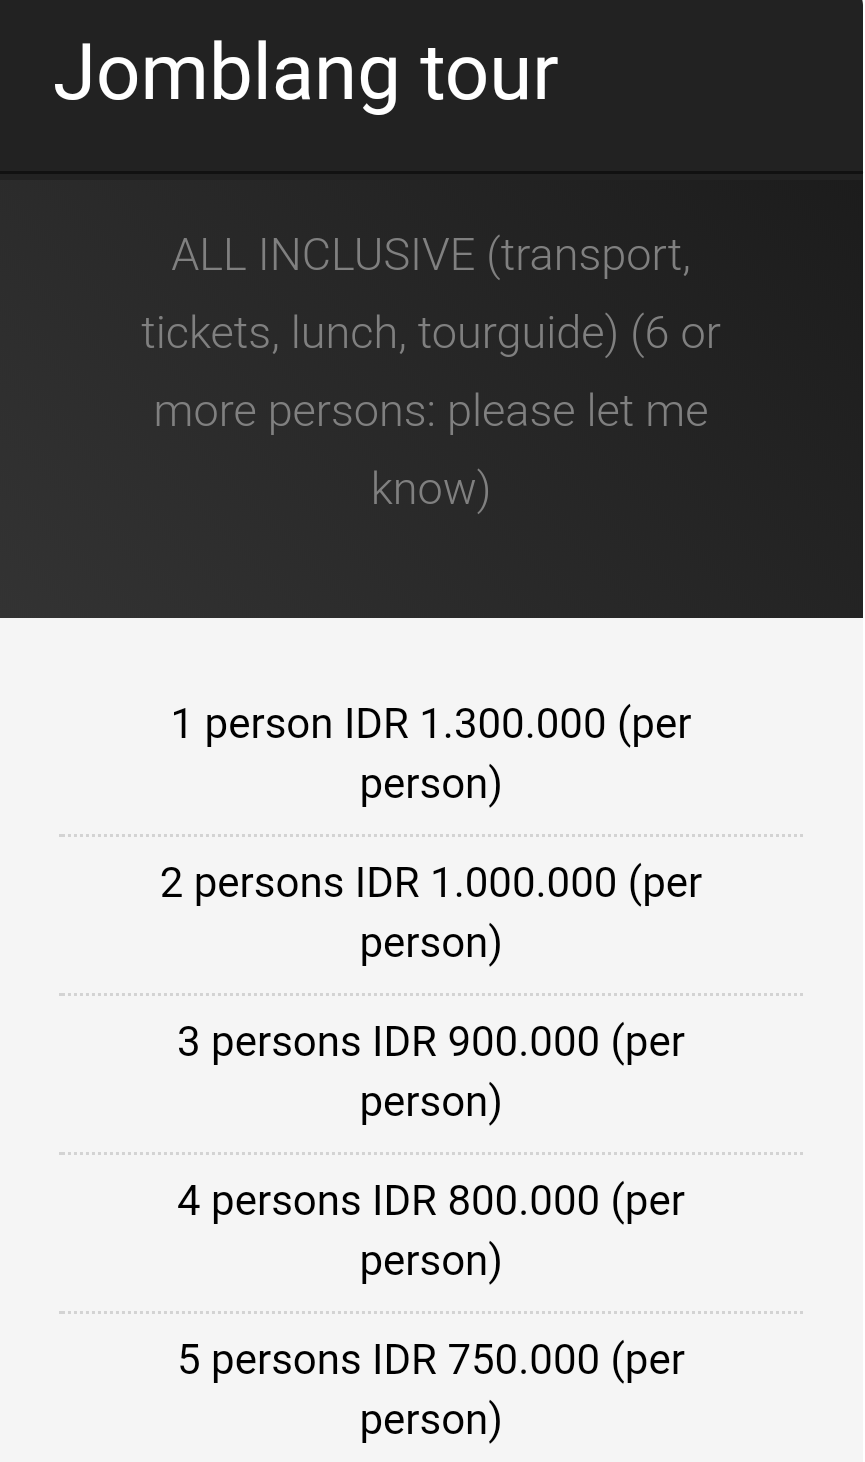 Jomblang tour price costs